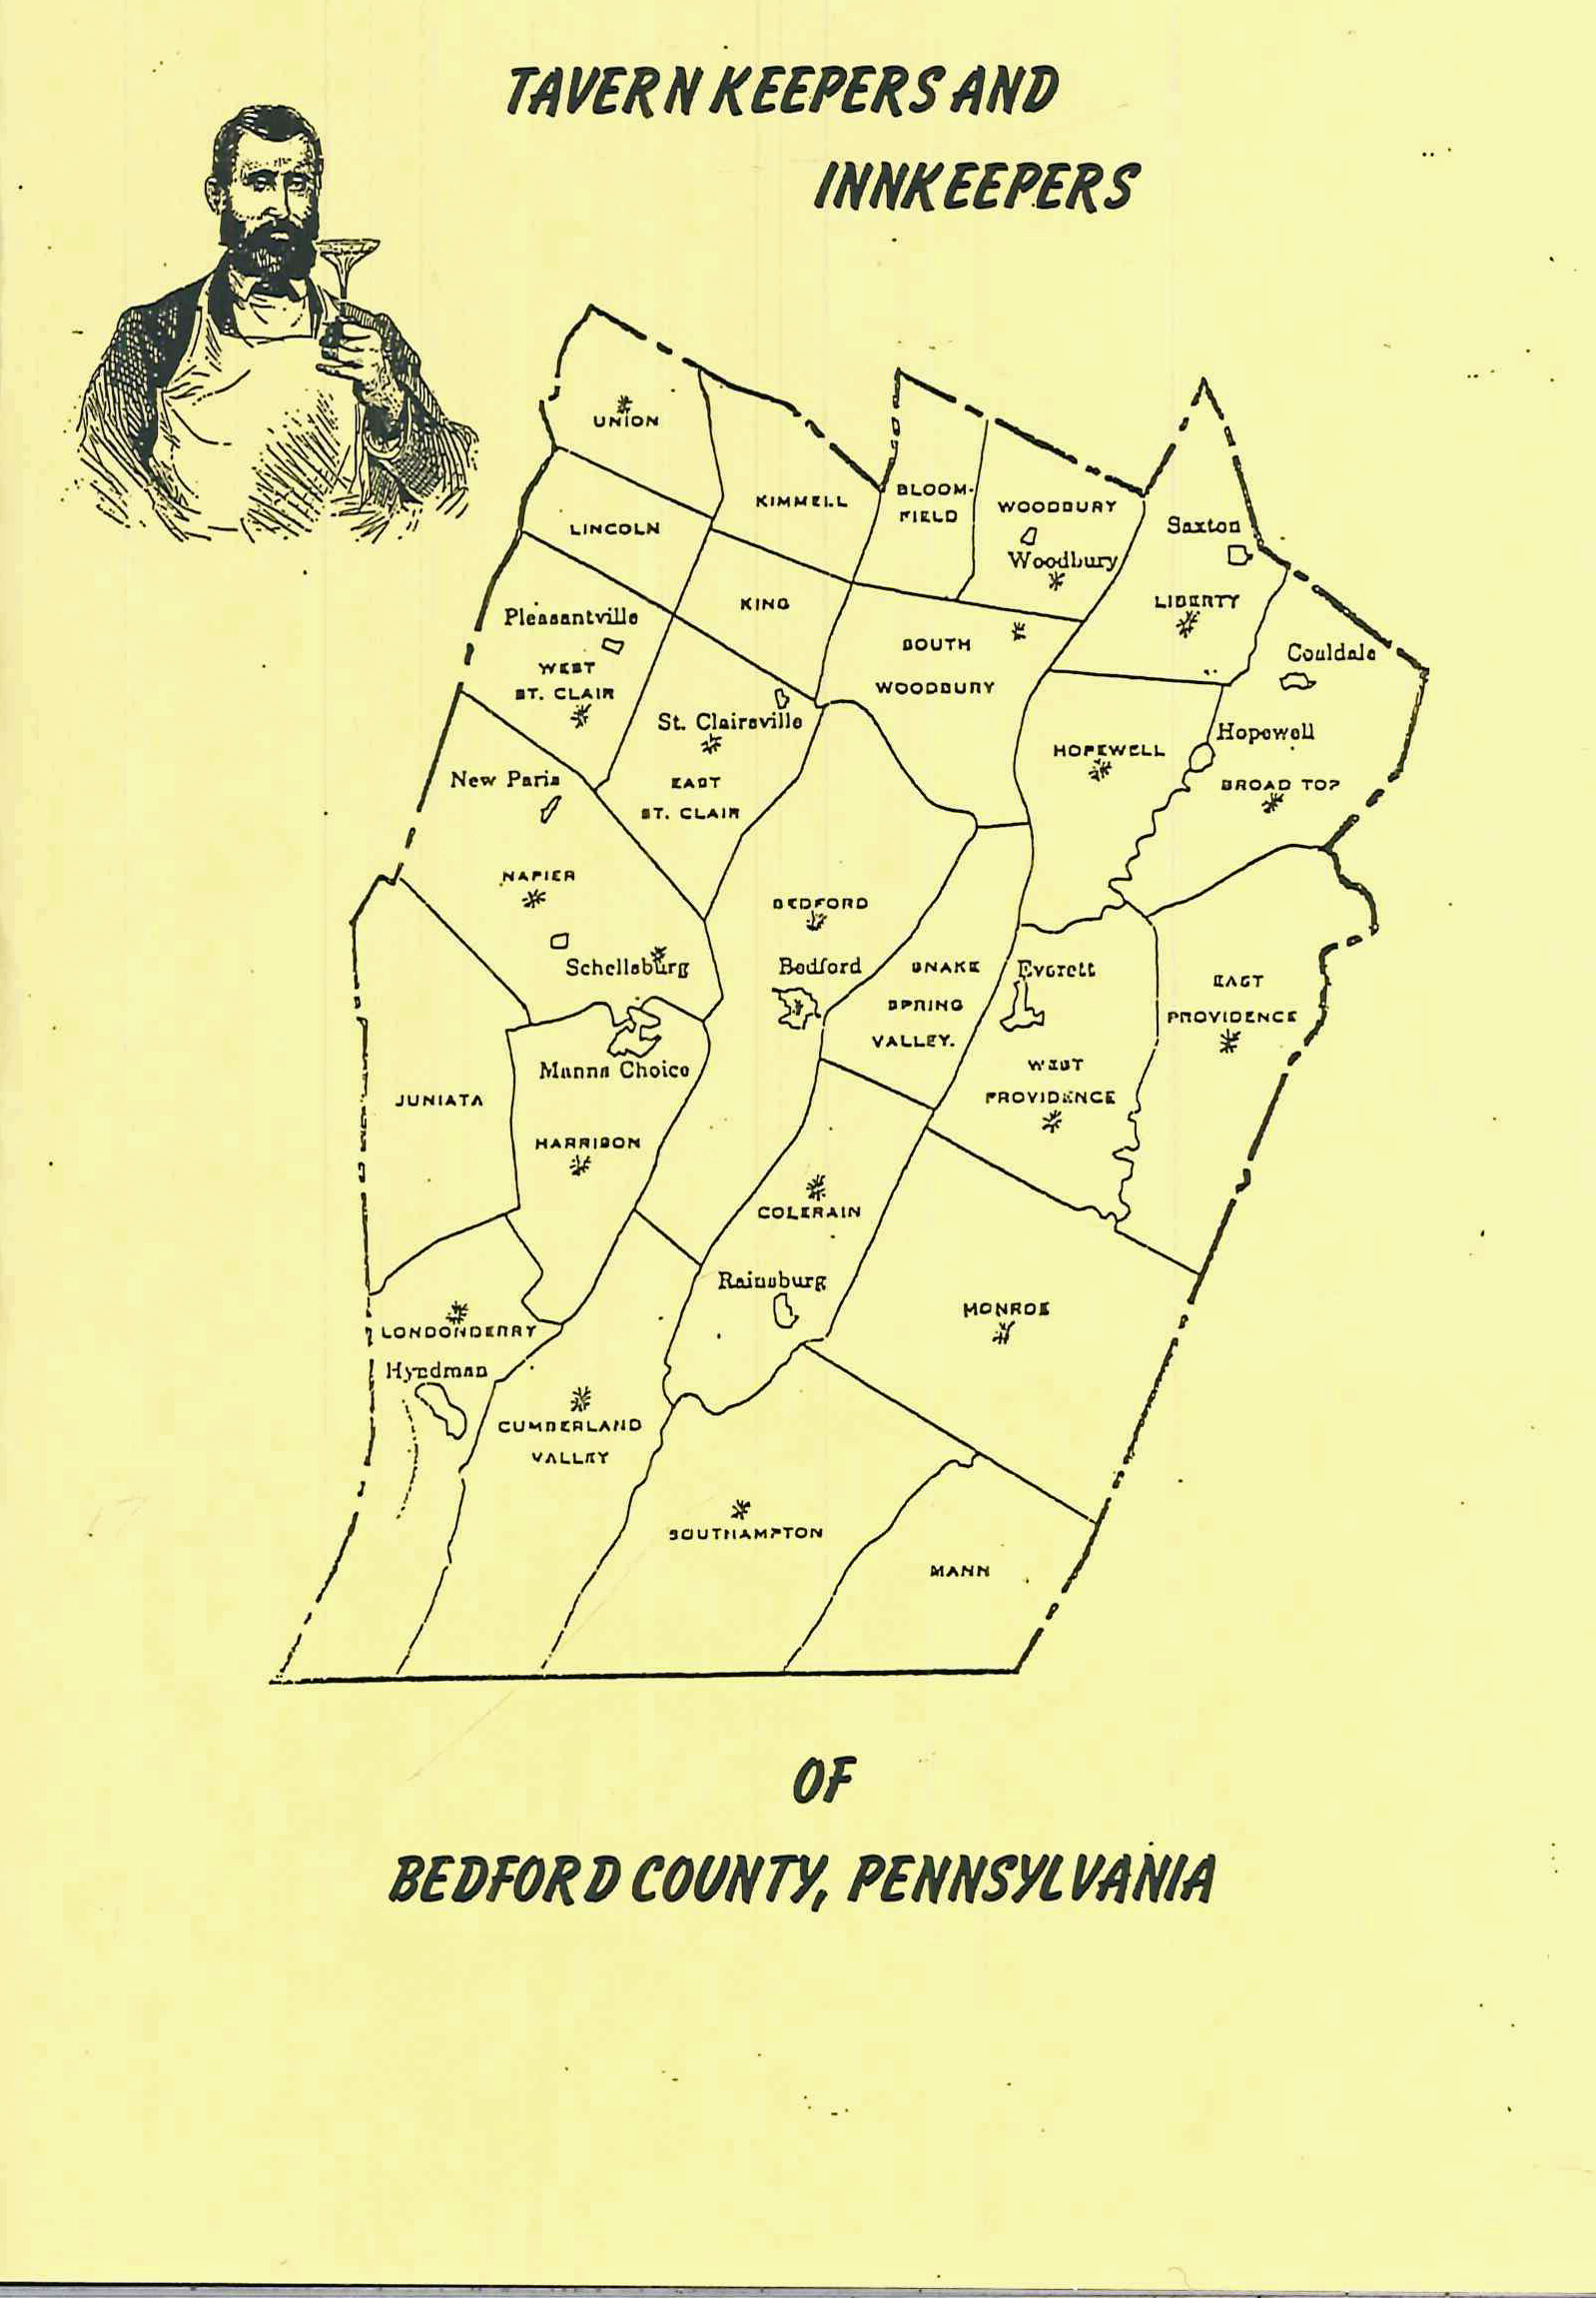 Tavern Keepers & Innkeepers of Bedford County, PA                 by James B. Whisker, Ph.D. & Vaughn E. Whisker